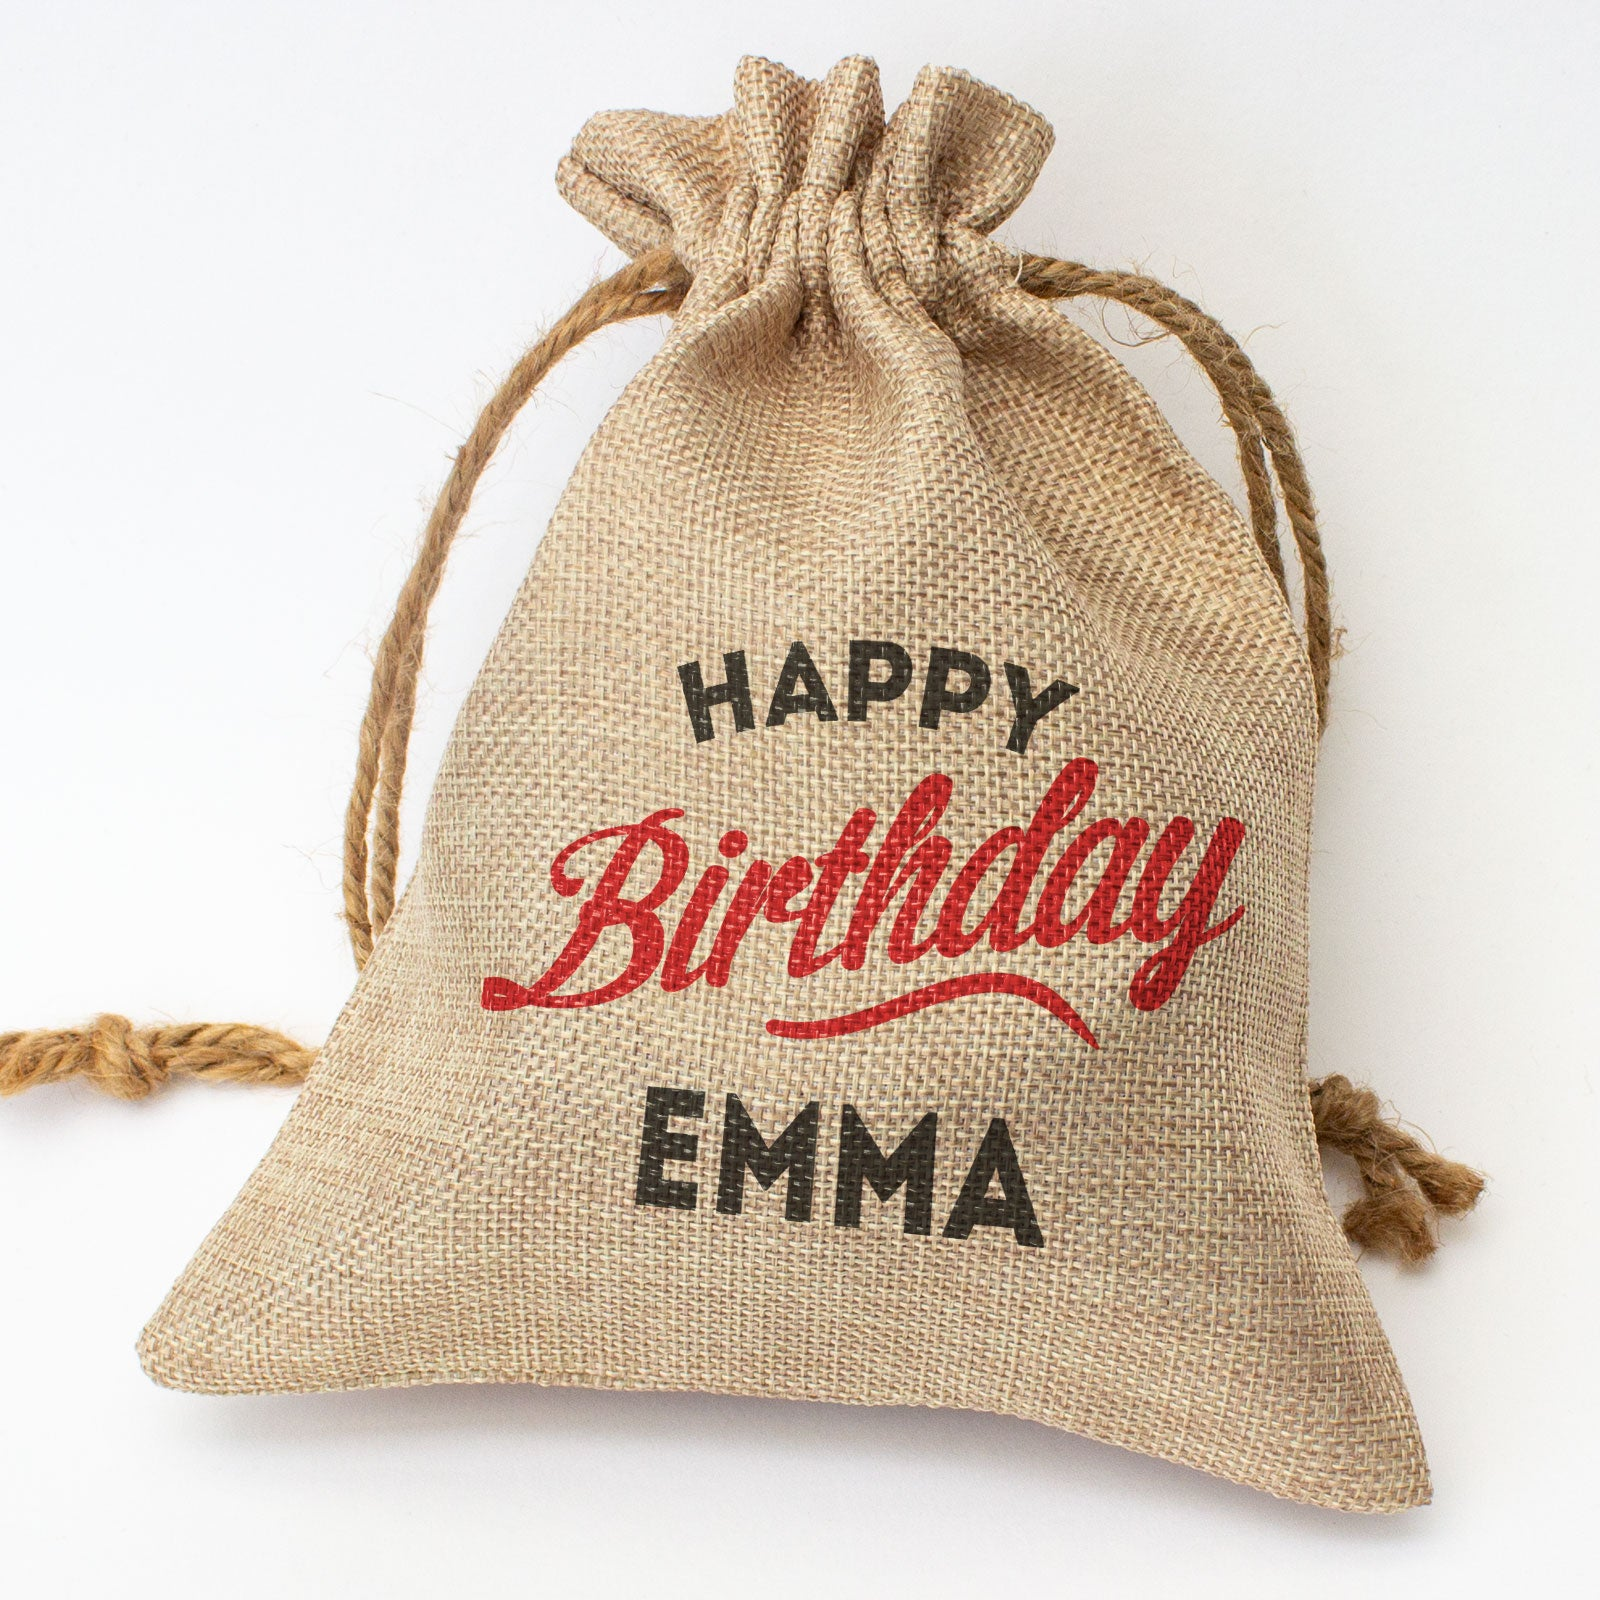 HAPPY BIRTHDAY EMMA - Toasted Coconut Bowl Candle – Soy Wax - Gift Present